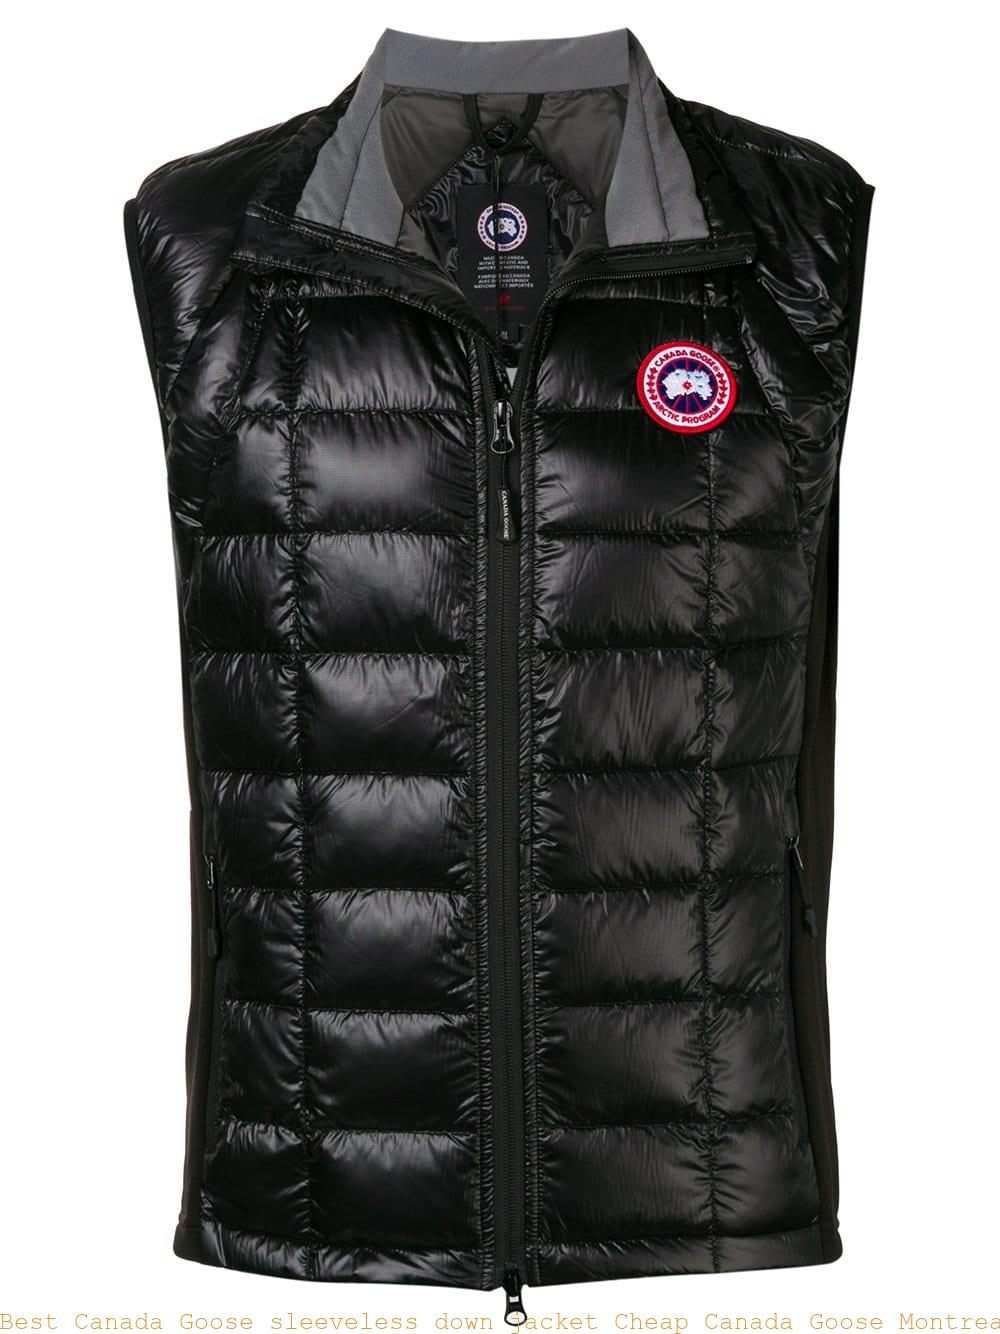 Best Canada Goose sleeveless down jacket Cheap Canada Goose Montreal  13168924 af7252c68